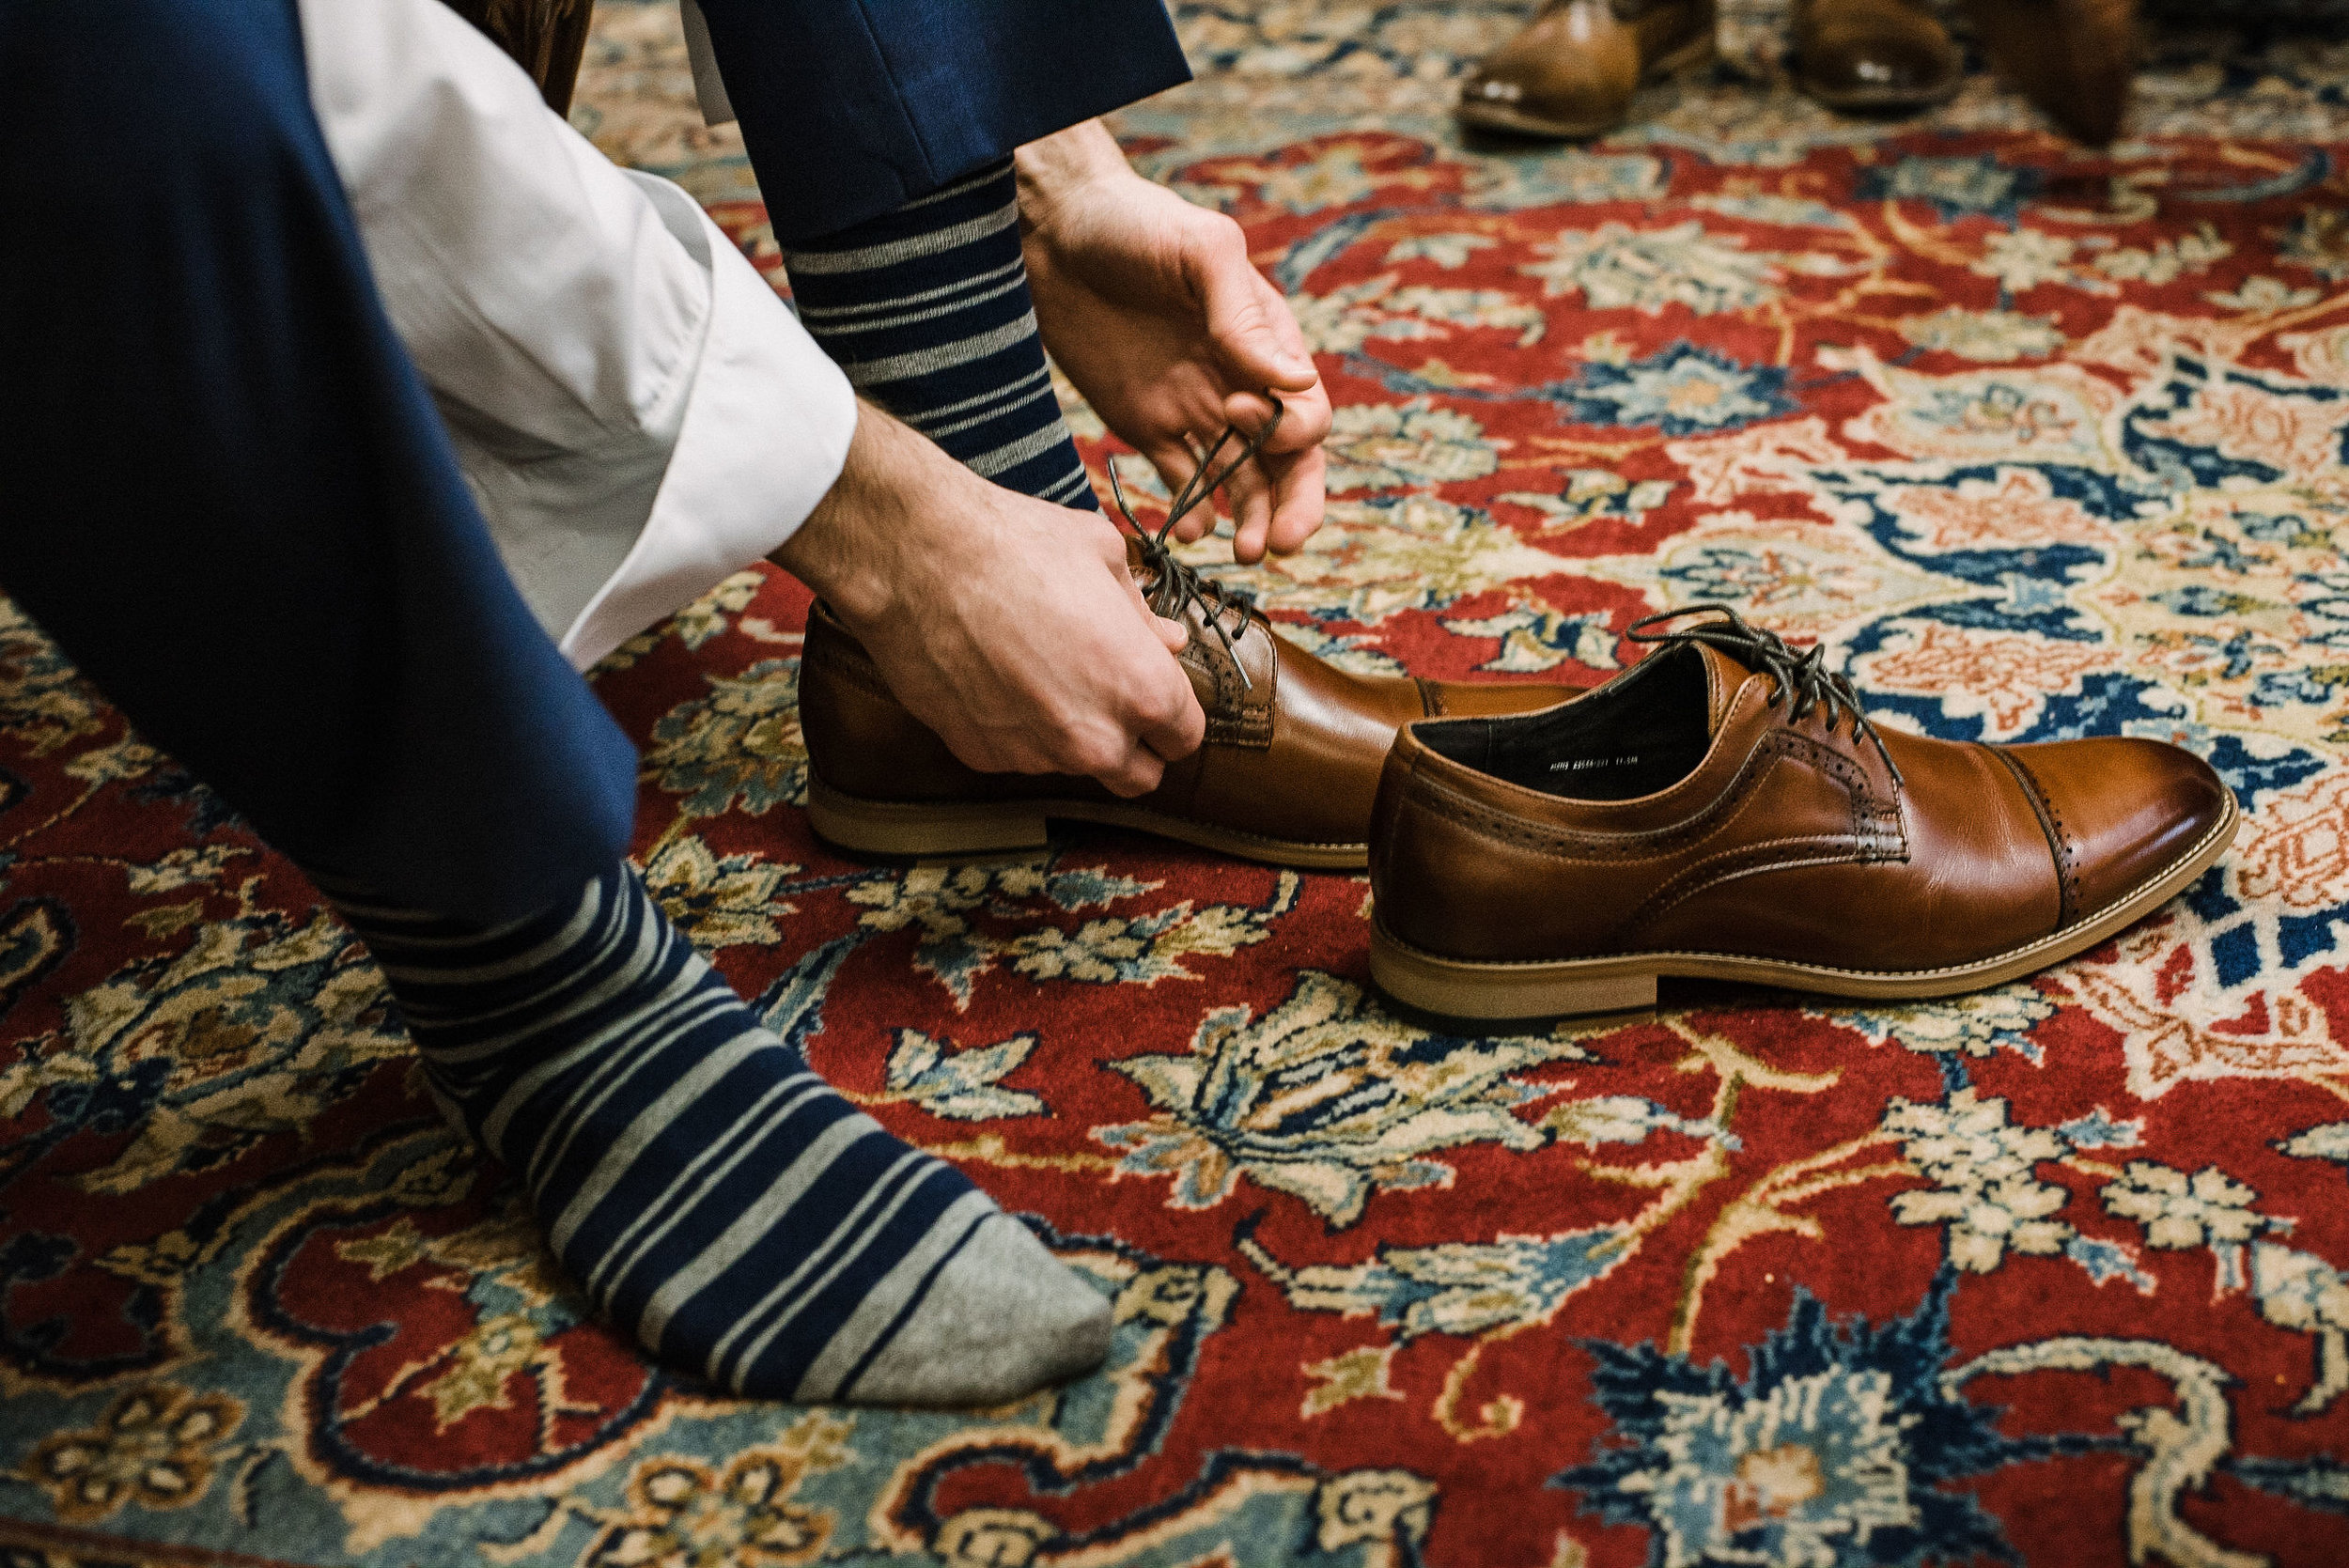 Groom putting on shoes at the Inn at the Old Silk Mill